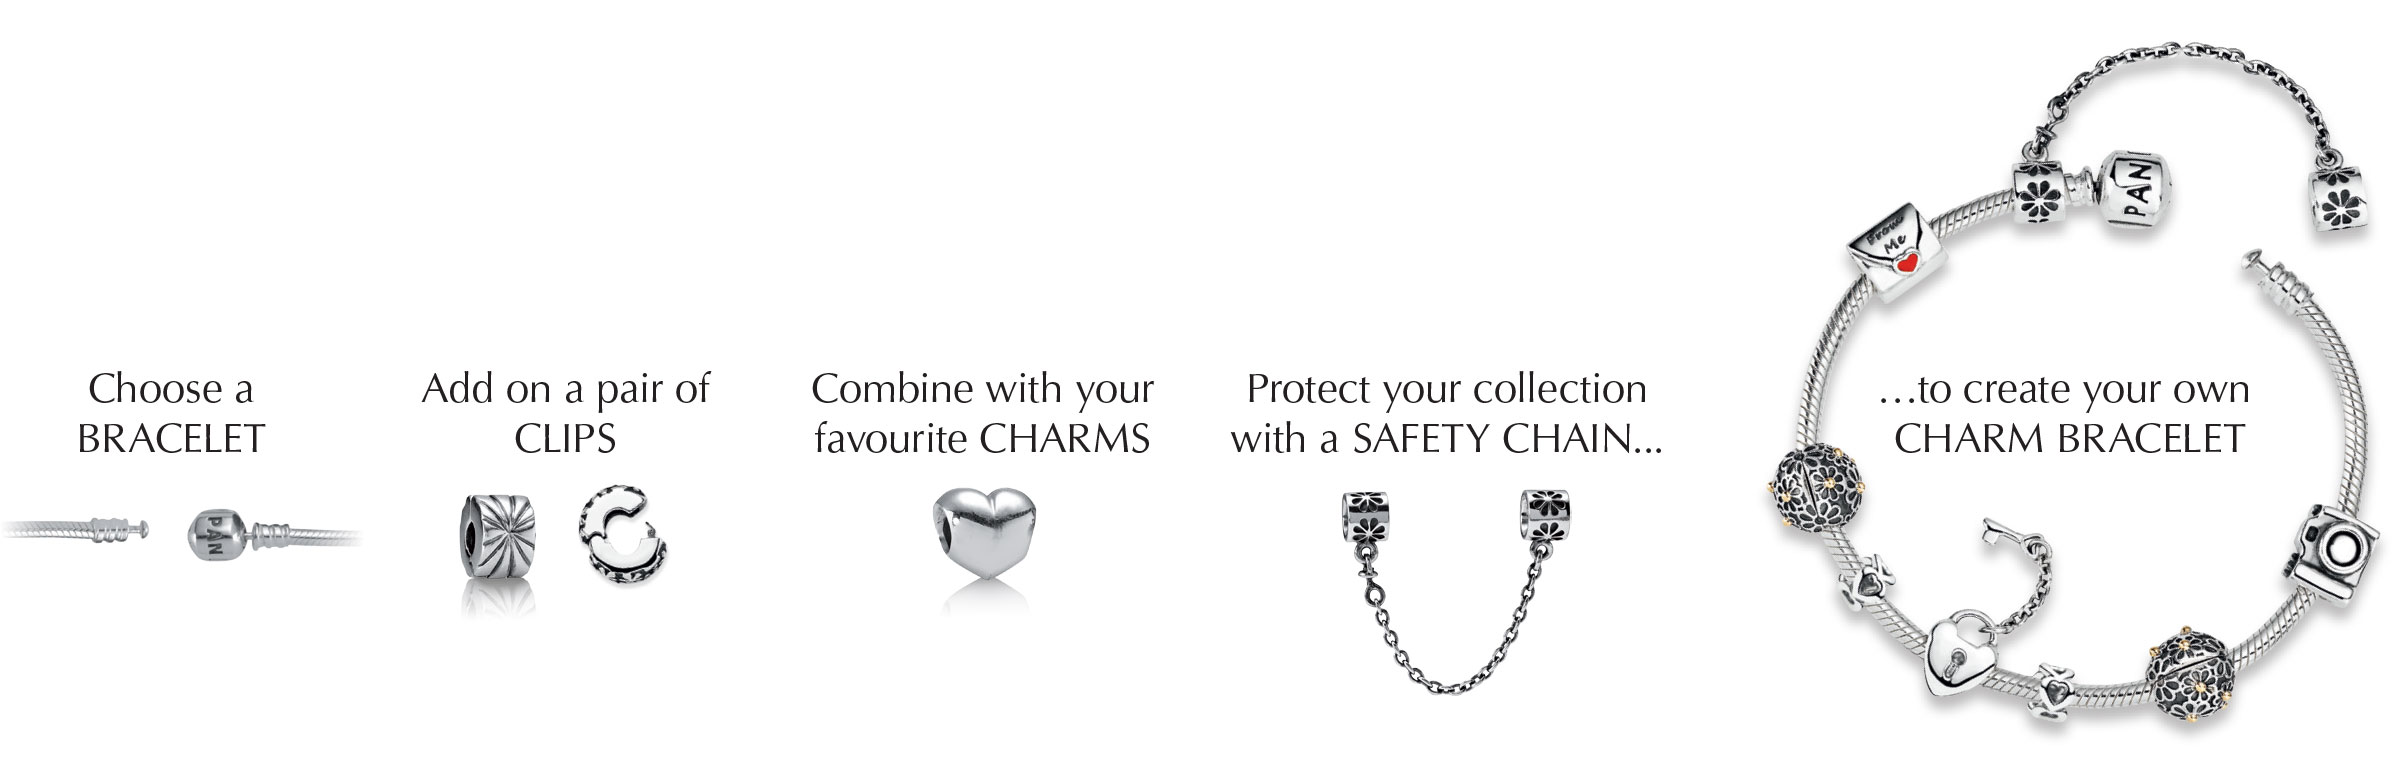 cfa53b0ab If you choose to add the decorative safety chain, place the swivel cuff  onto your bracelet first. Then arrange charms in the desired order and  finish with ...